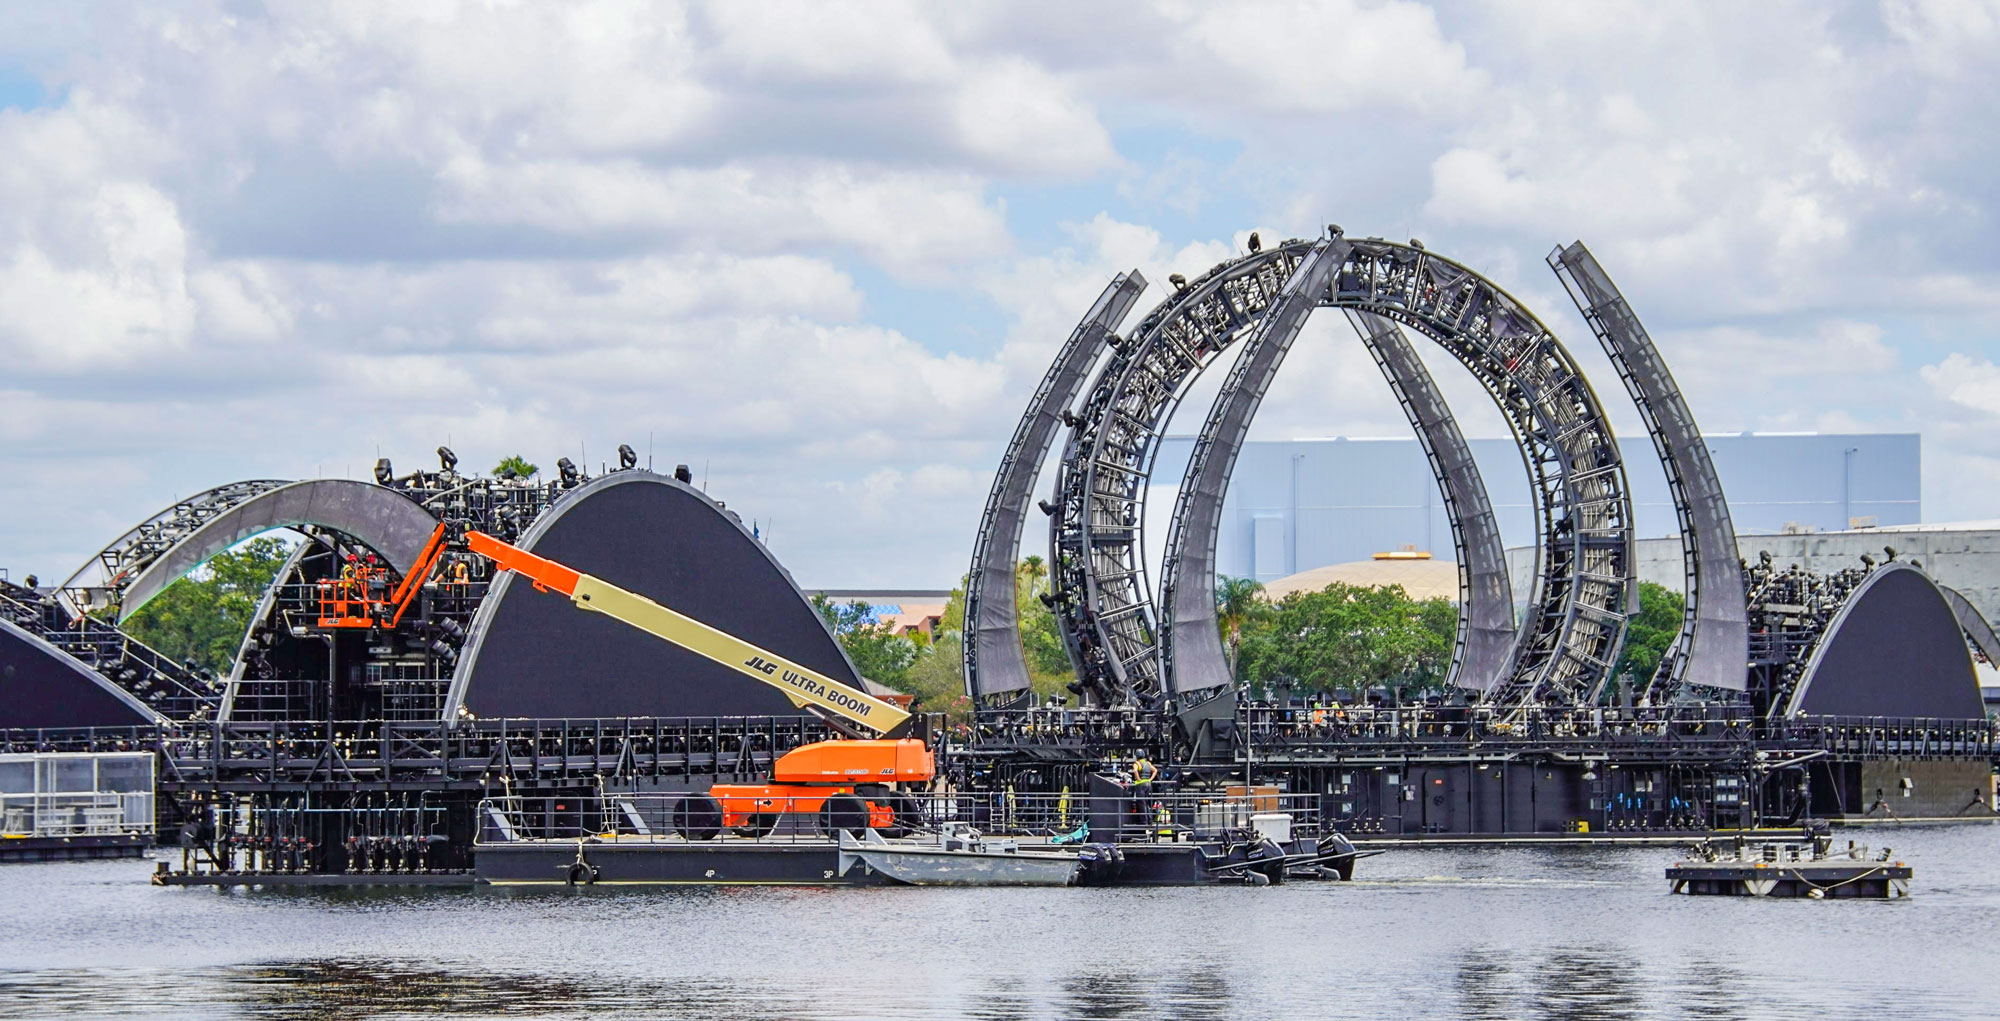 Epcot Harmonious Barges getting aligned for an eventual showing.